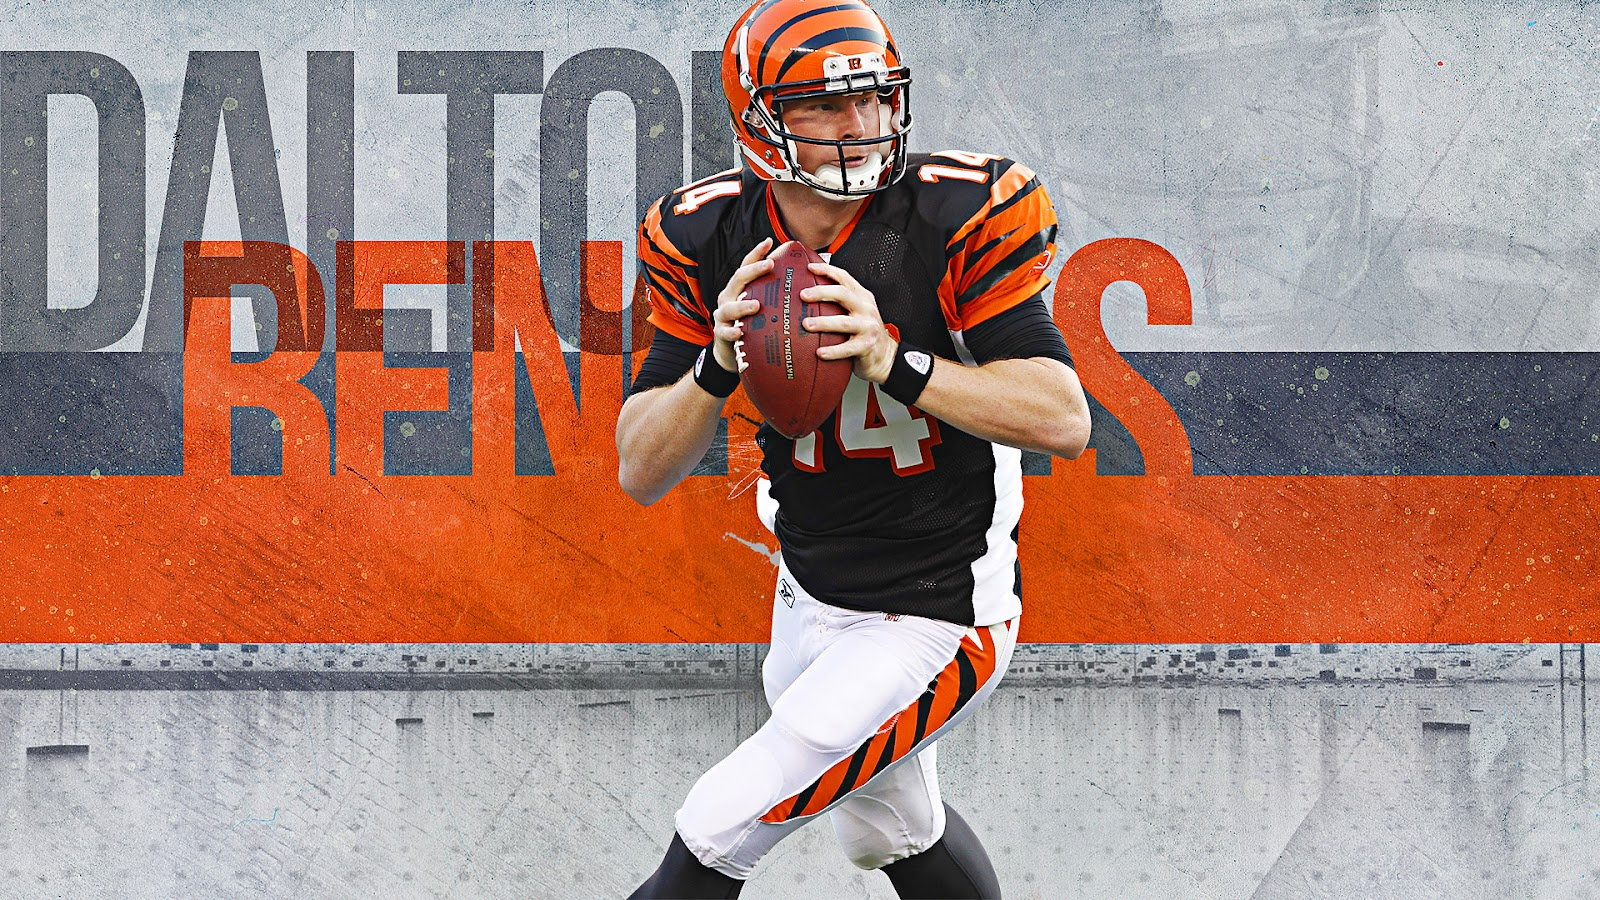 NFL Wallpapers: Andy Dalton - Cincinnati Bengals